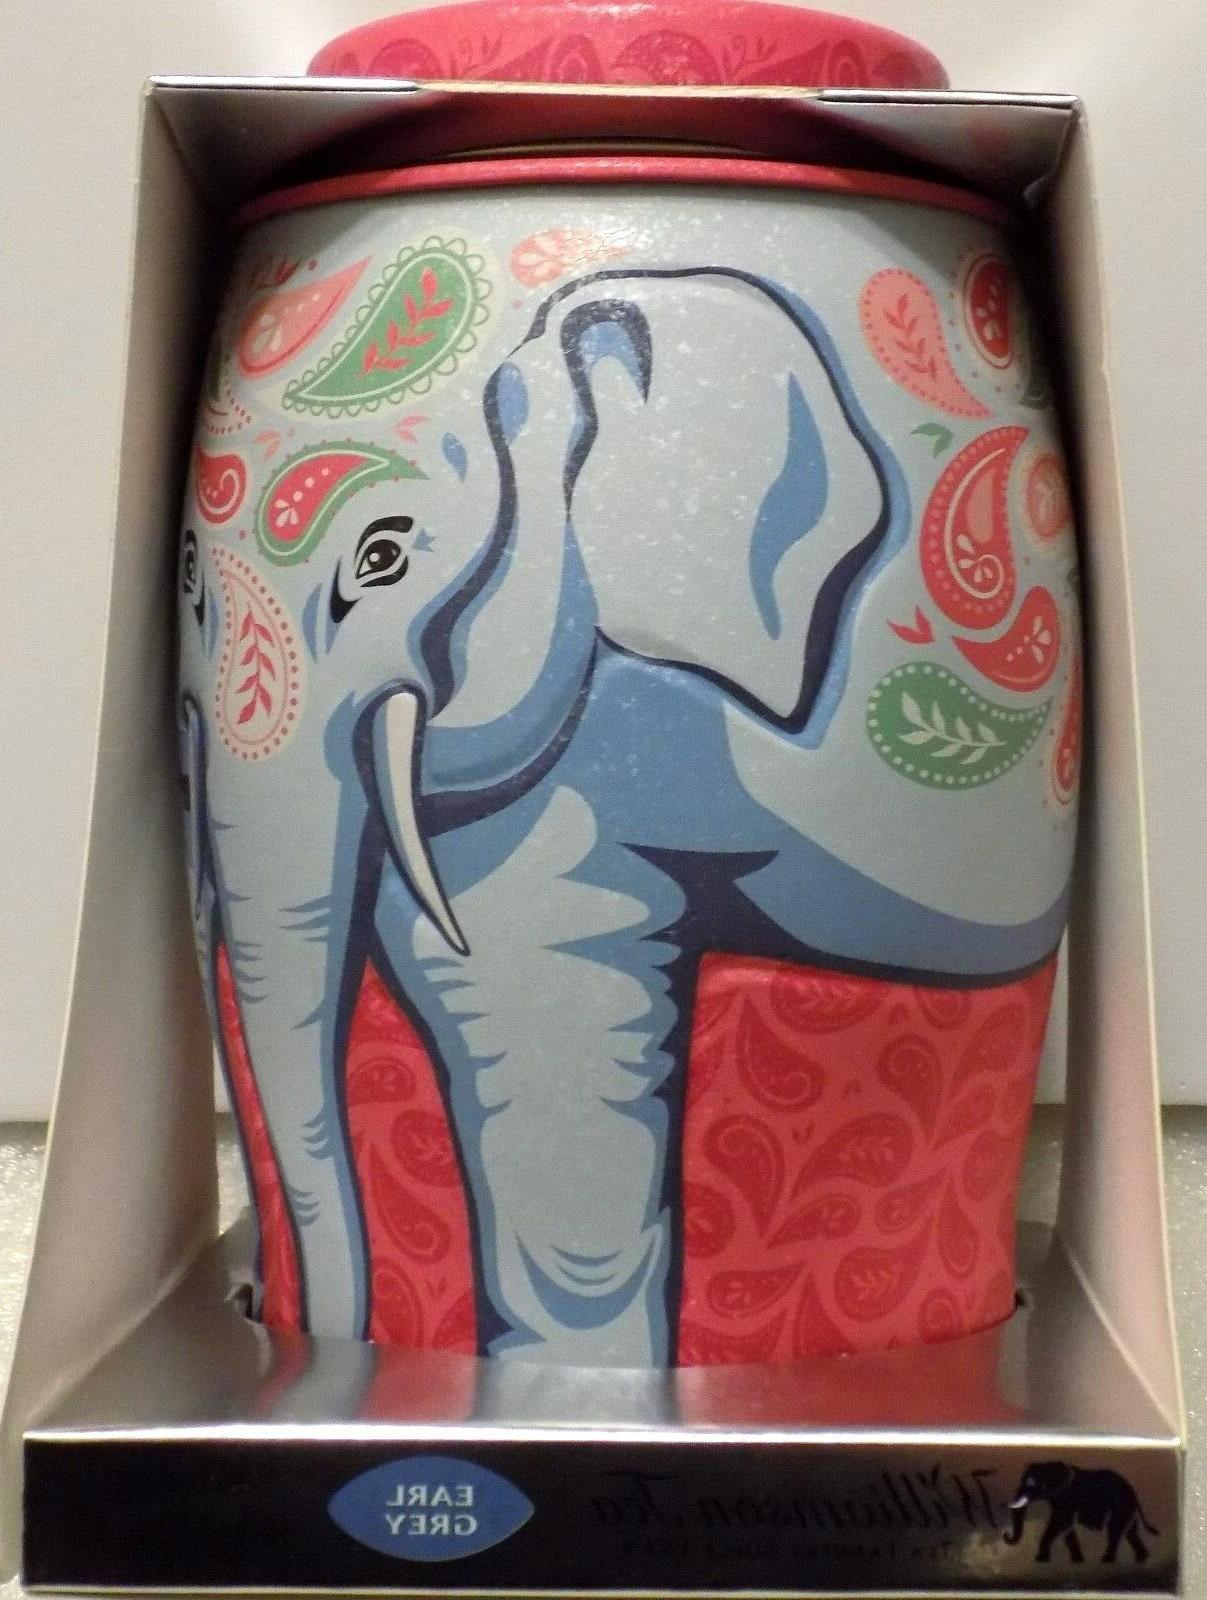 New Williamson Tea Paisley Elephant Tin Canister bags